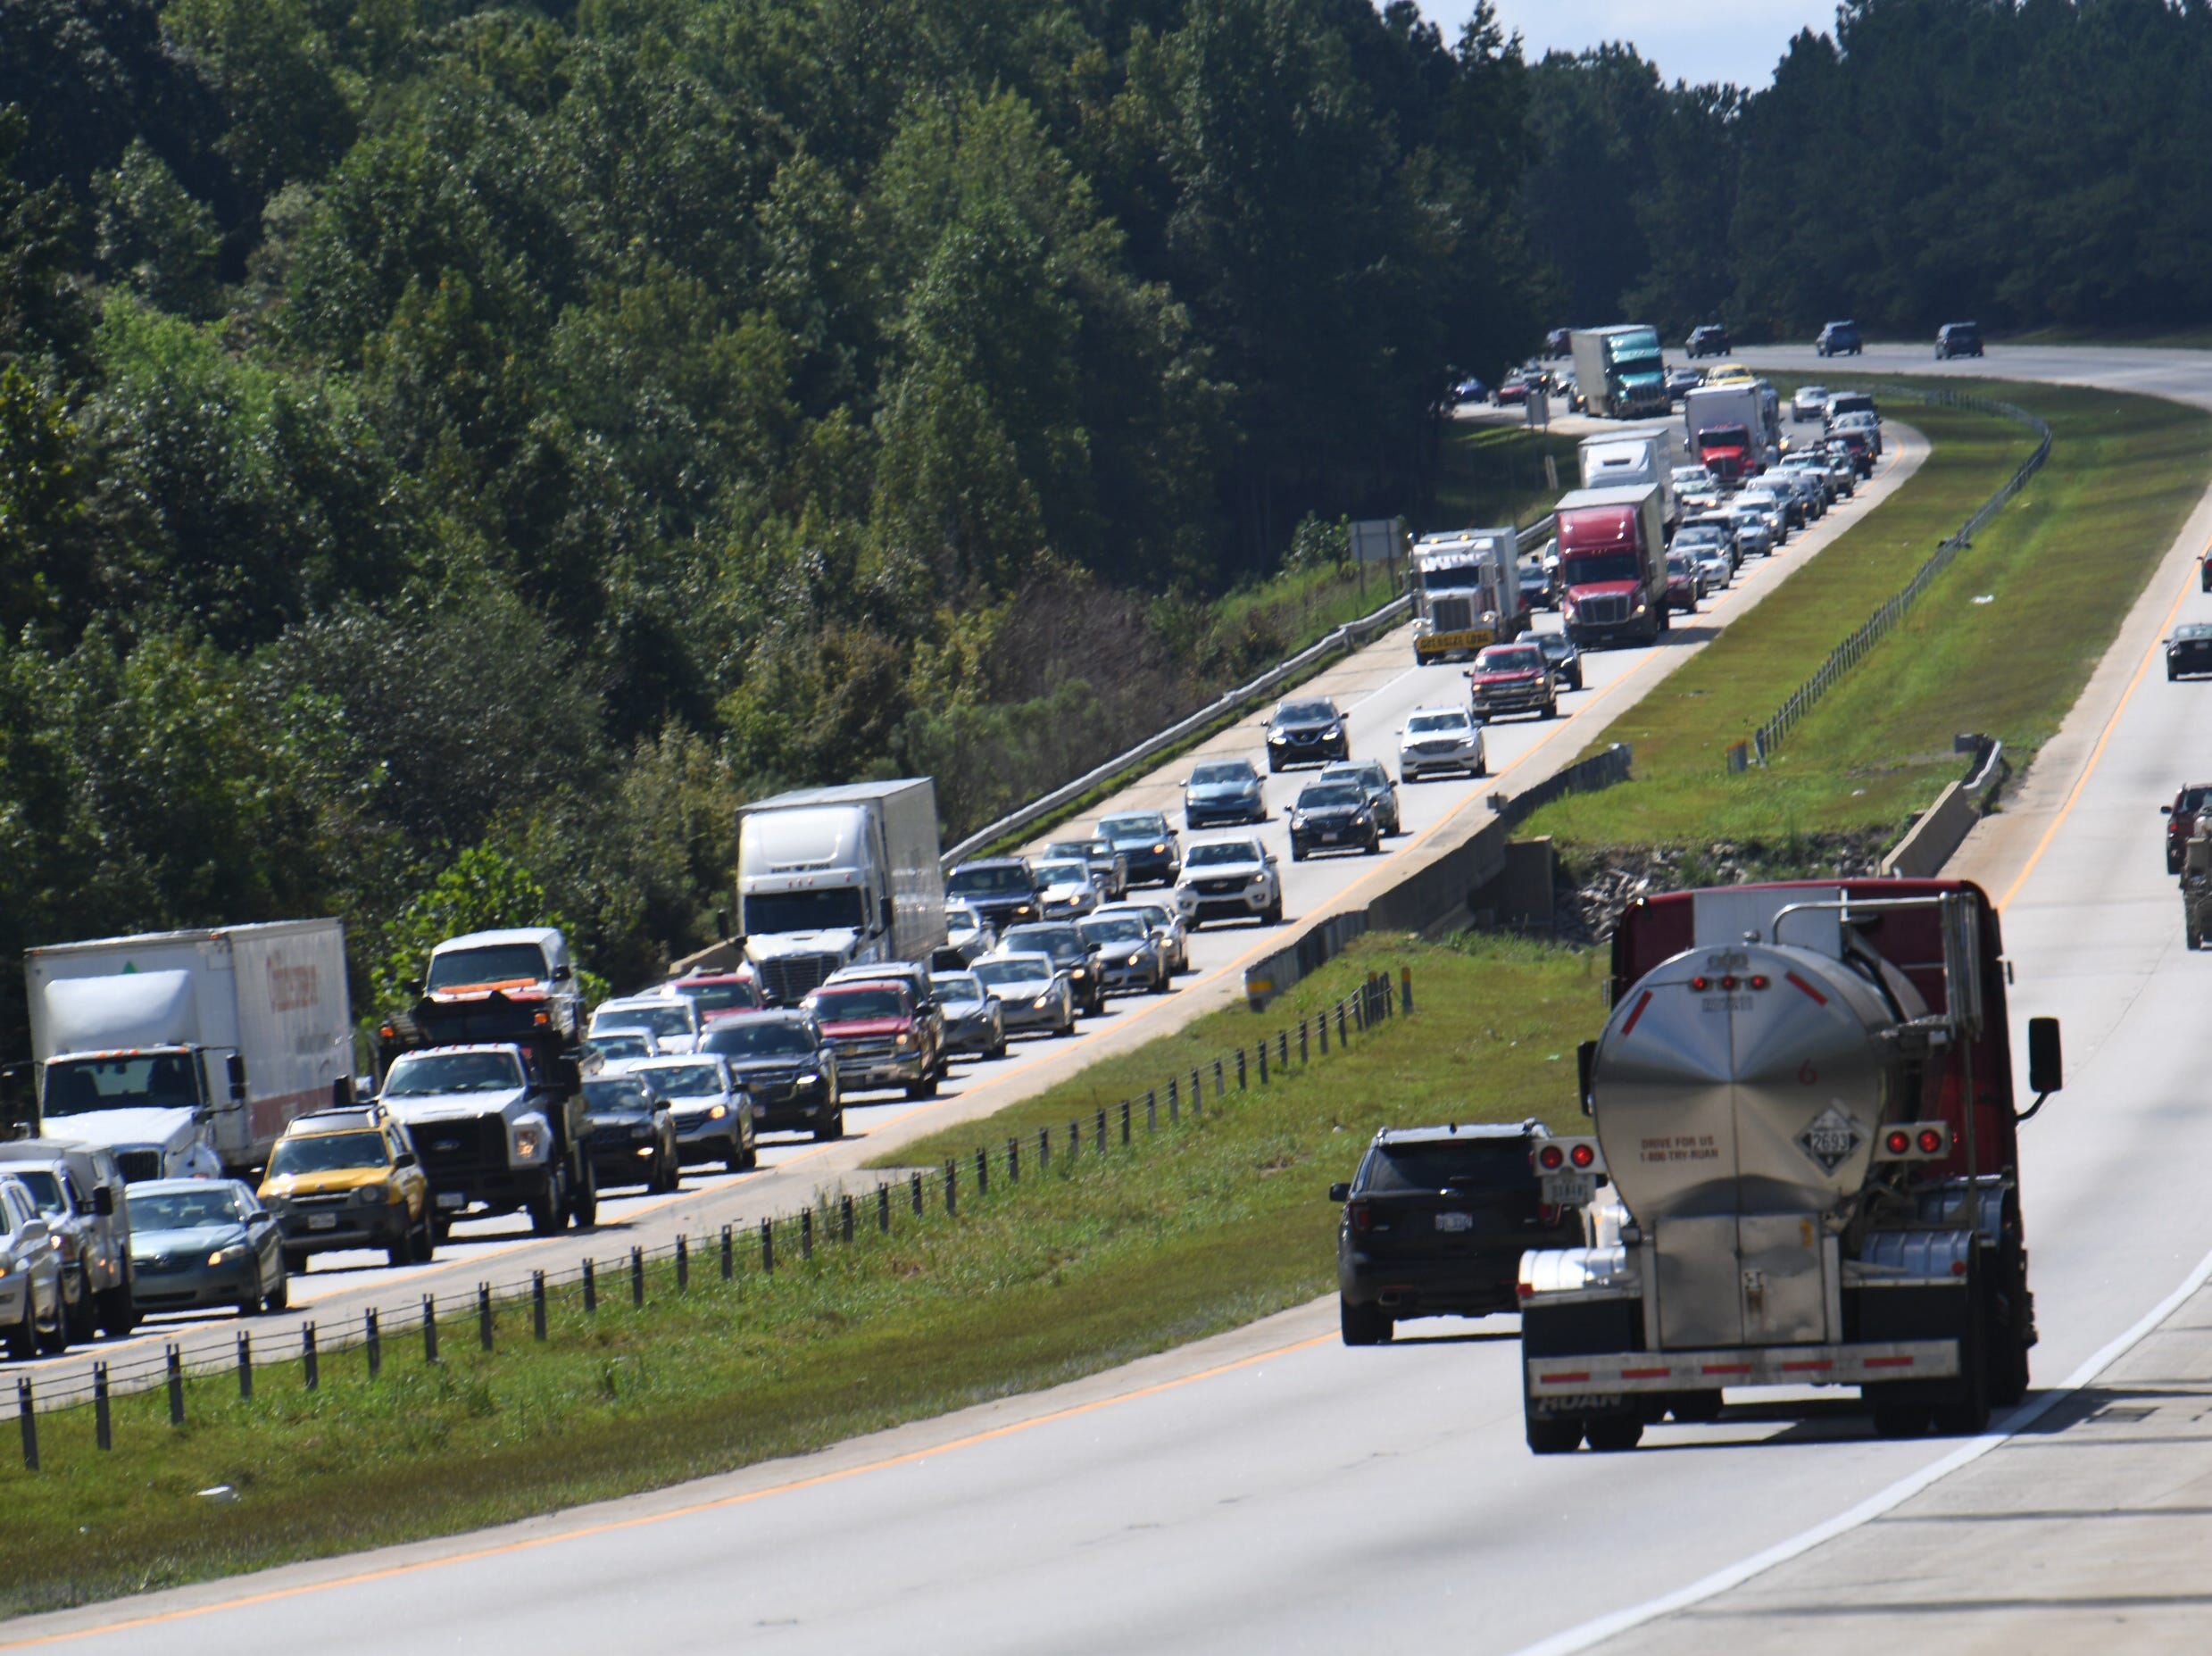 About 100 miles out of Wilmington, N.C., a gas tanker heads toward the city as the city began to evacuate on Tuesday, Sept. 11, 2018, ahead of Hurricane Florence's anticipated landfall later in the week.